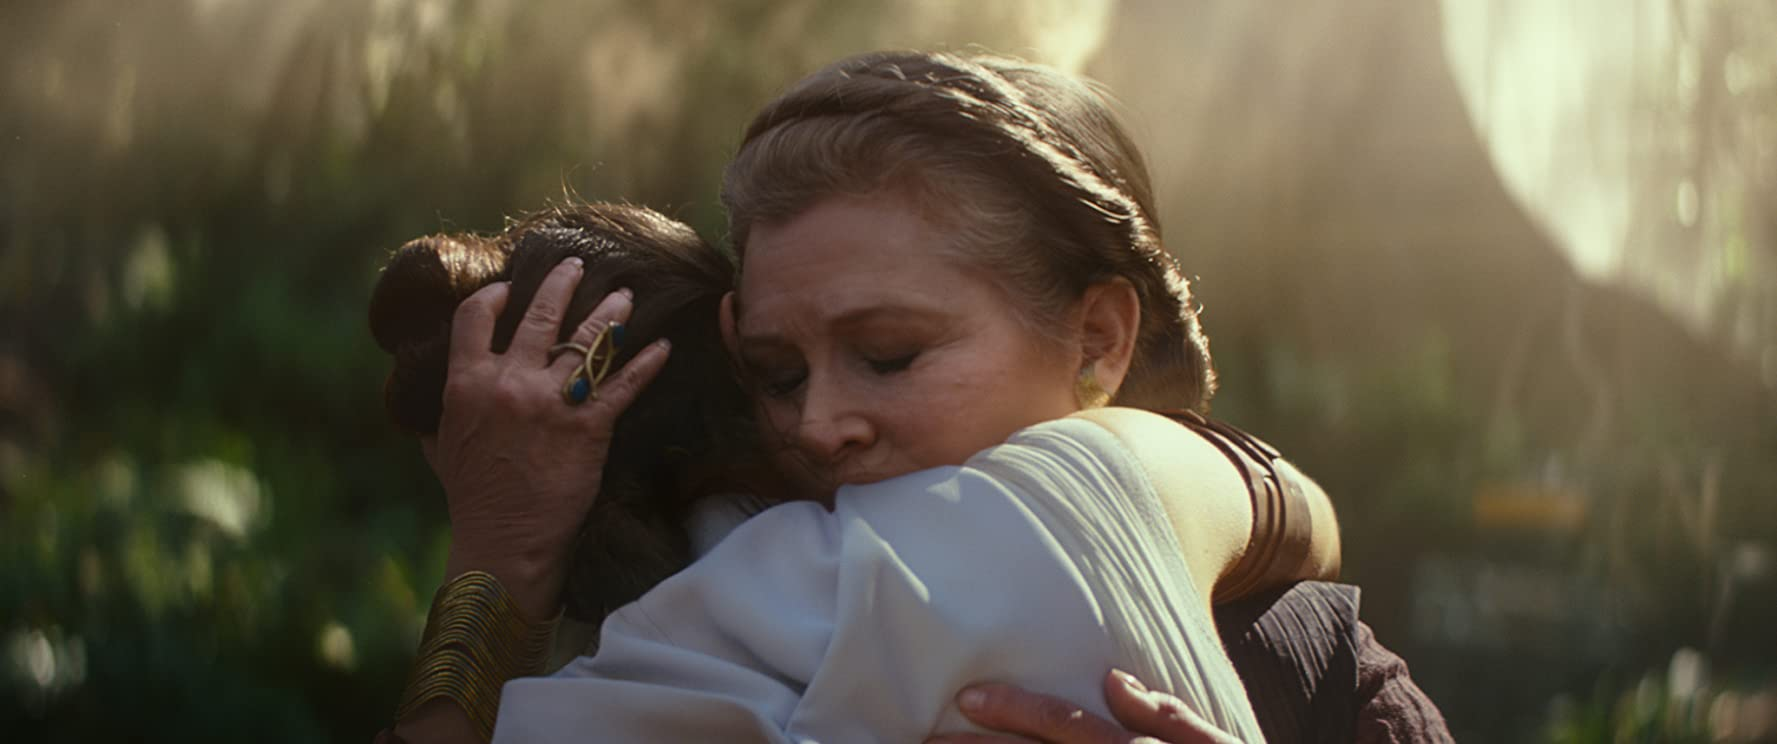 Carrie Fisher and Daisy Ridley in Star Wars: Episode IX - The Rise of Skywalker (2019)